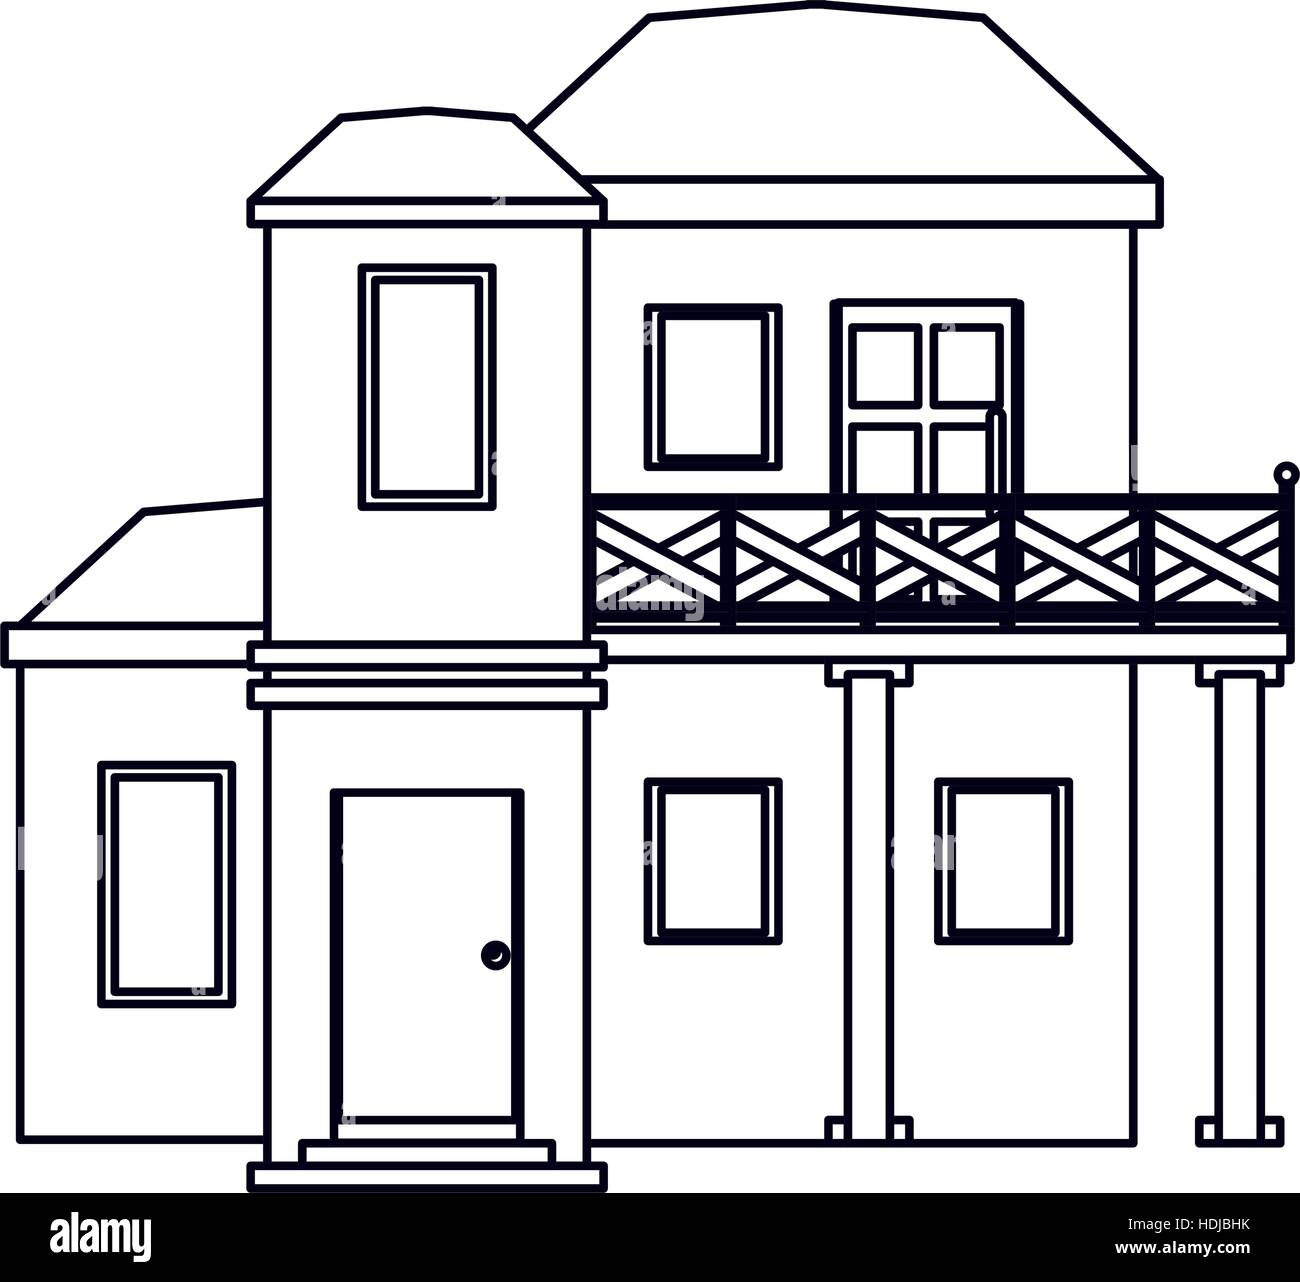 House outline picture - Stock Vector House With Balcony Roof Garden Outline